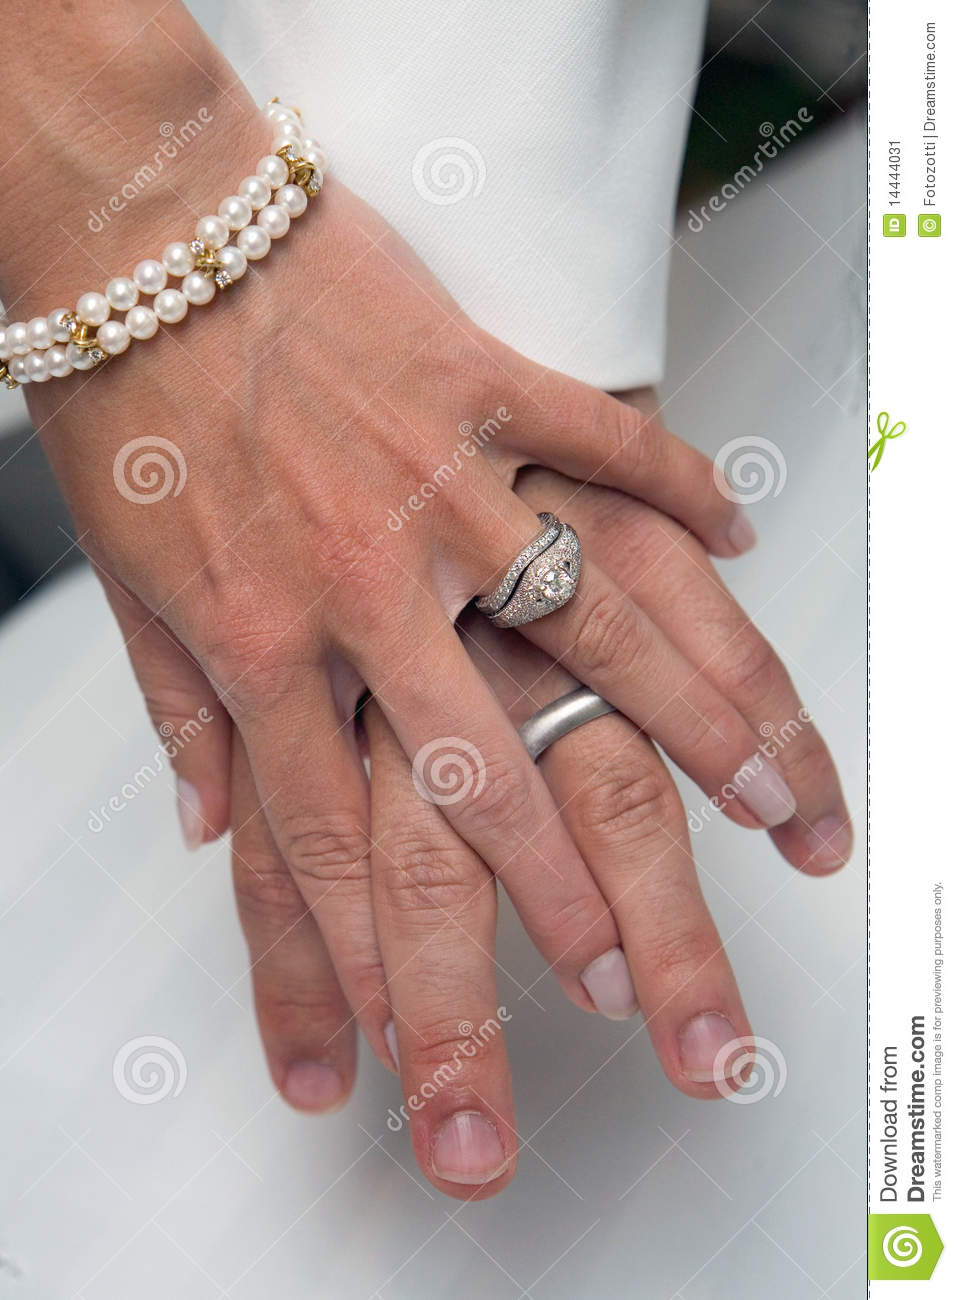 Wedding rings  holding handsWedding Rings Holding Hands